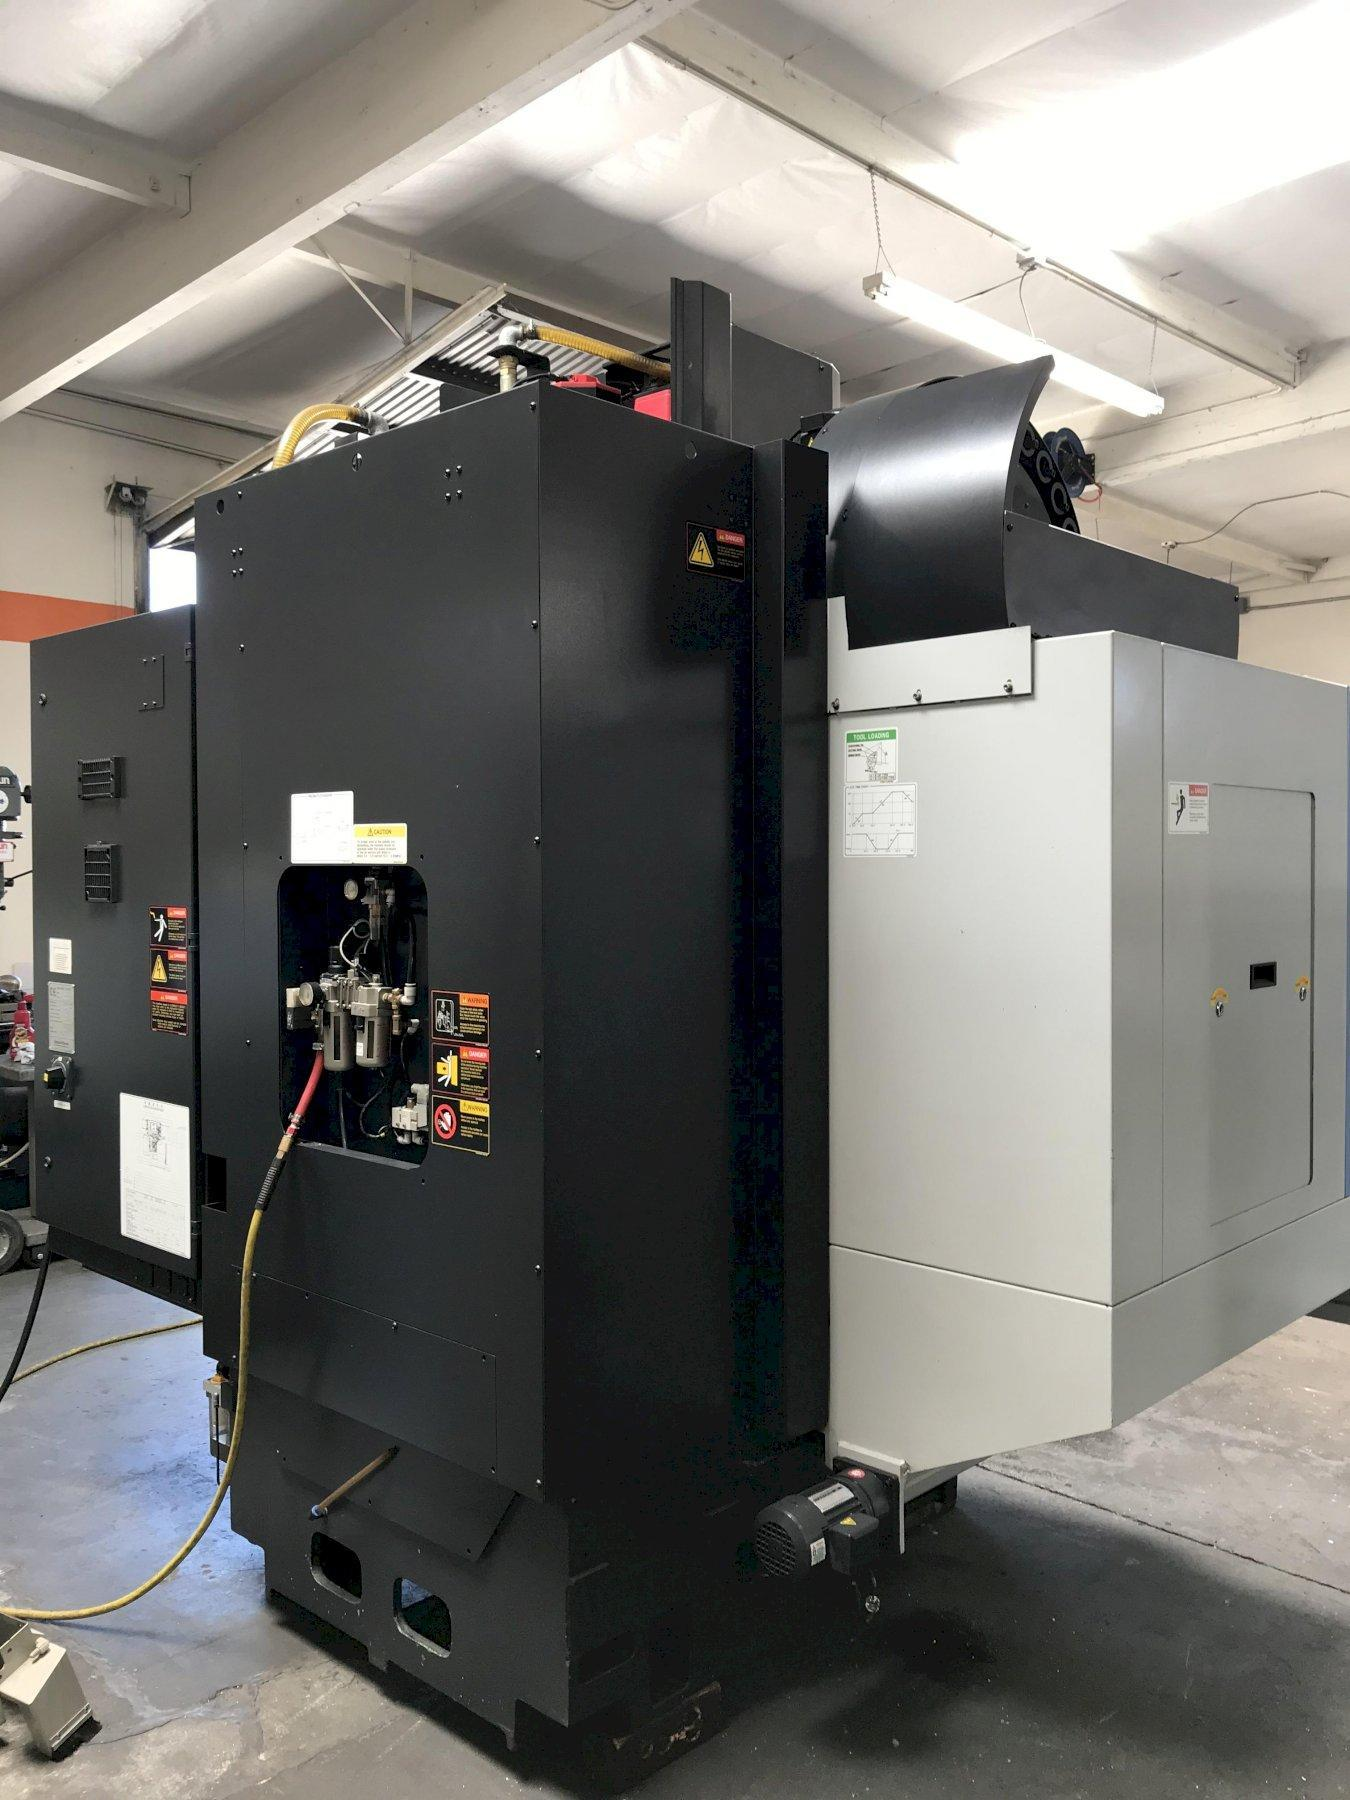 "Doosan DNM400 VMC 2010, Fanuc I Series Control, 30"" x 17"" x 20"" Travels, 8k RPM 20-HP Spindle, 30-ATC, Chip Conveyor, and Coolant Tank."